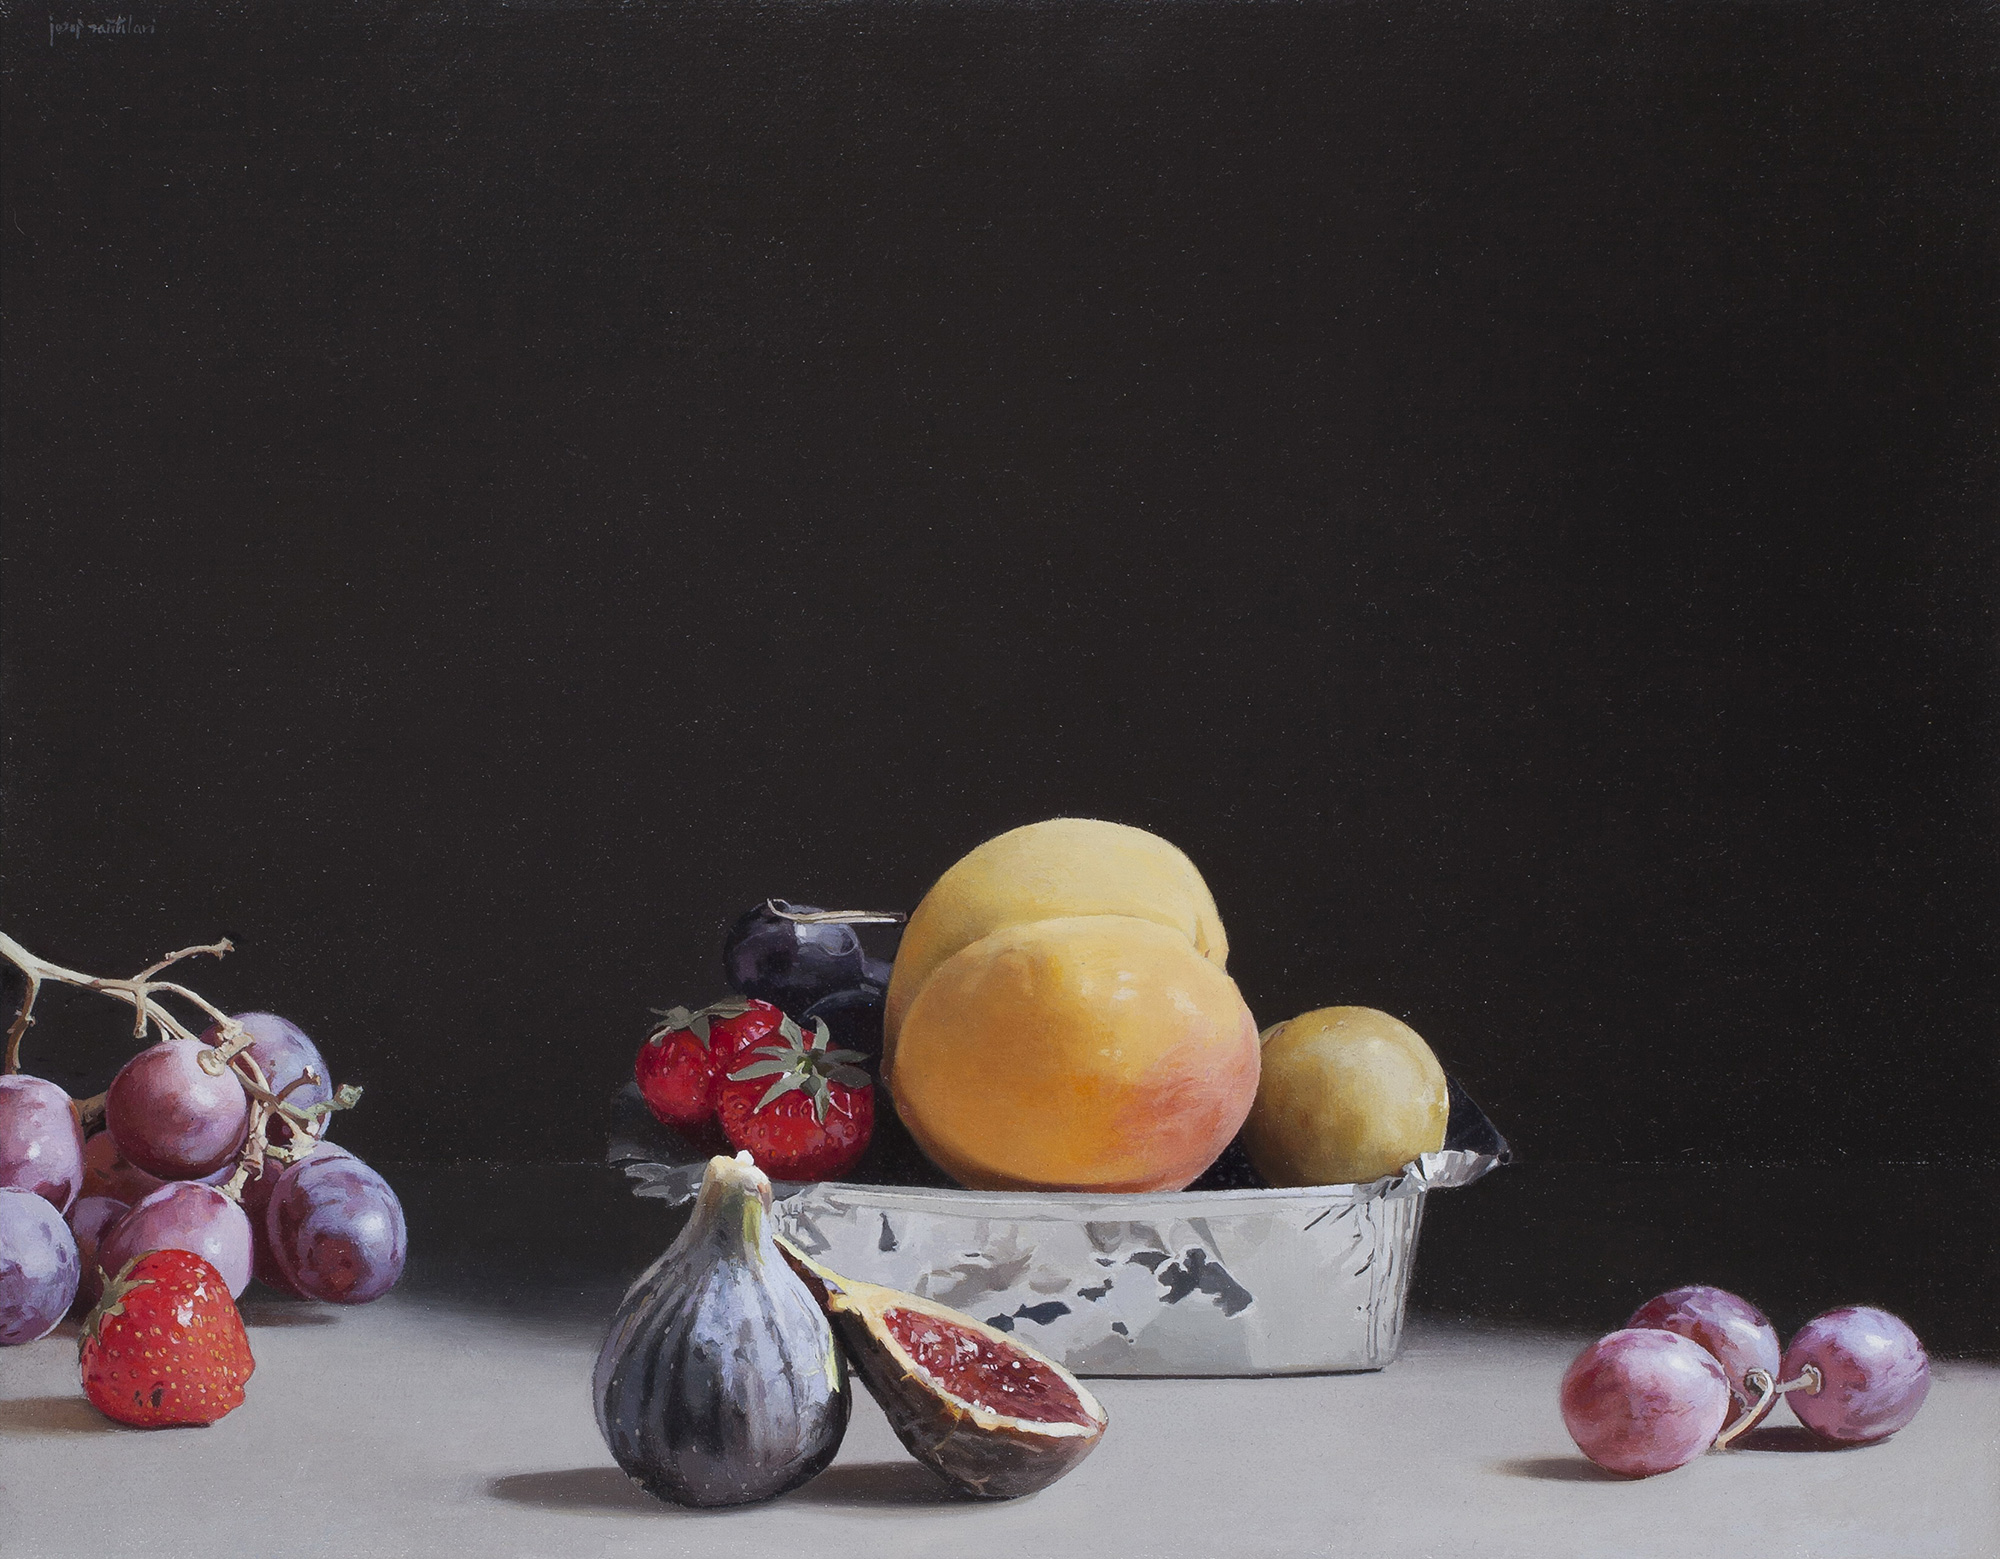 Peaches and other fruits, Josep Santilari